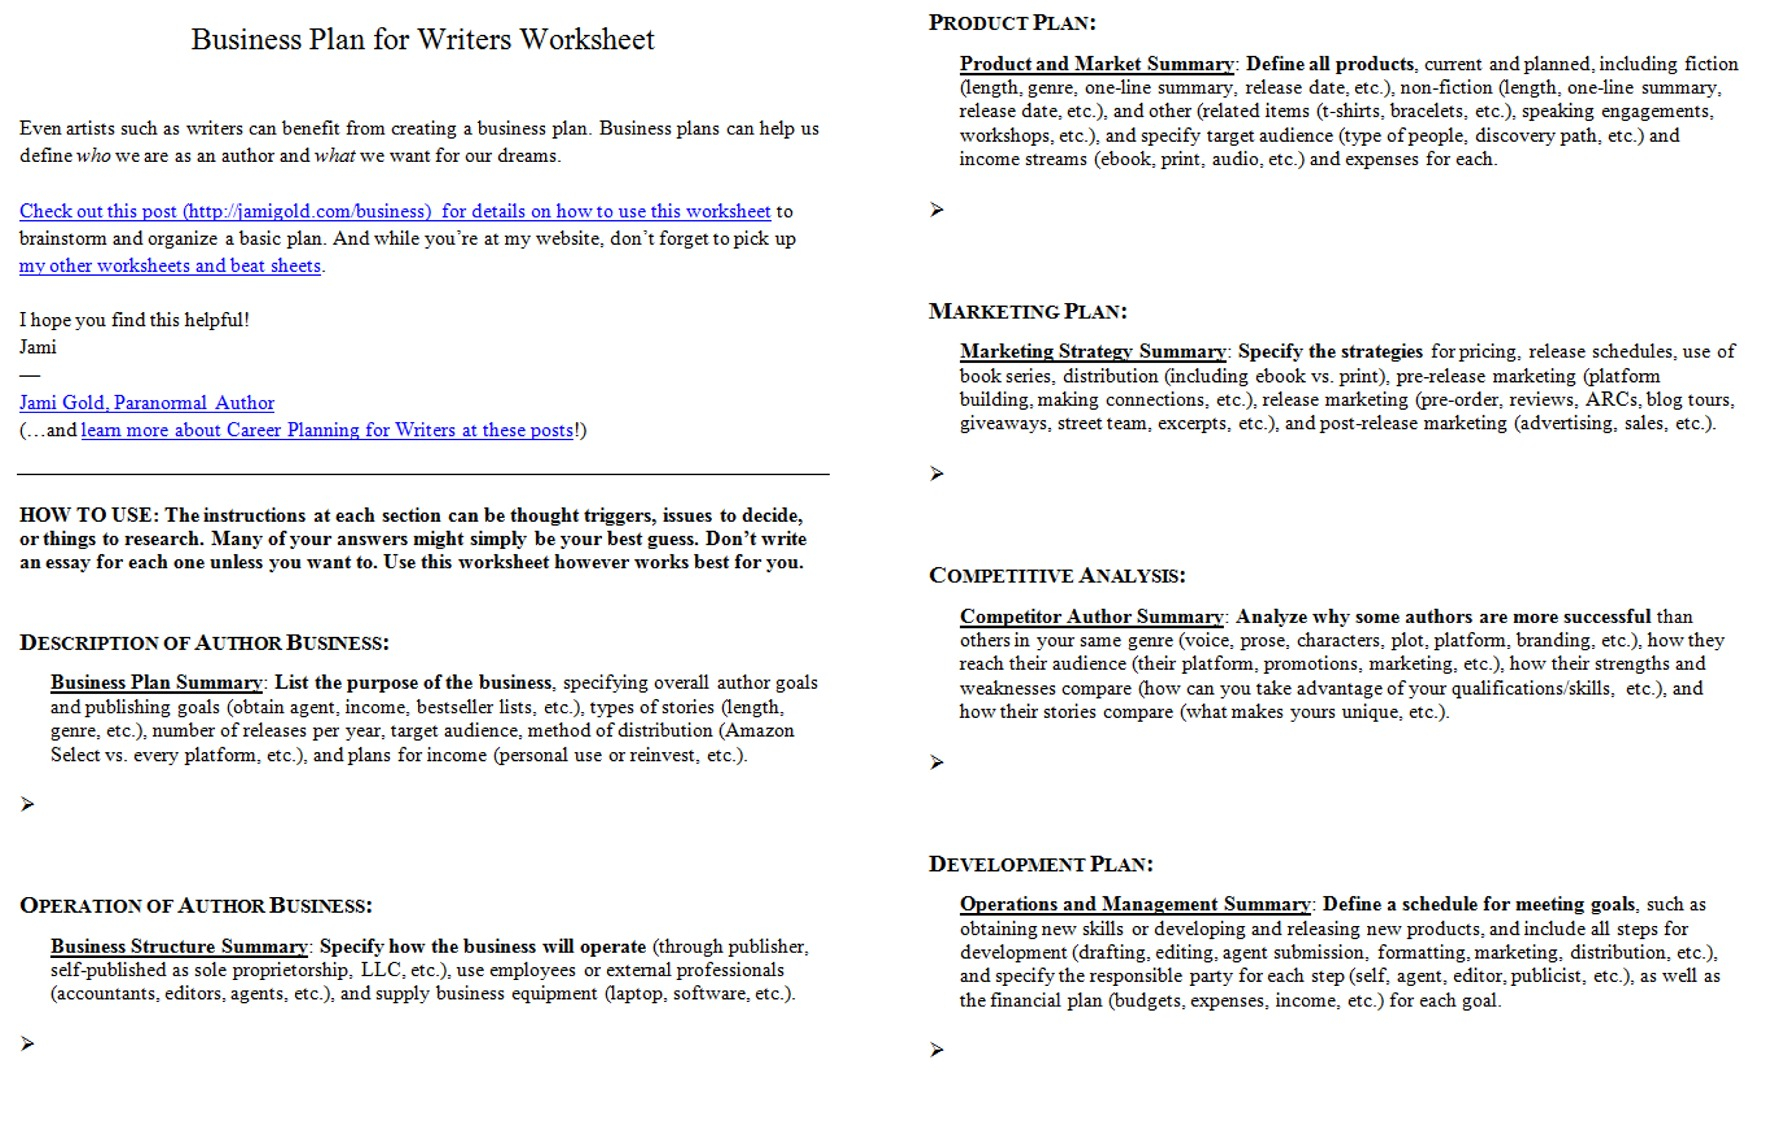 Aldiablosus  Nice Worksheets For Writers  Jami Gold Paranormal Author With Glamorous Screen Shot Of Both Pages Of The Business Plan For Writers Worksheet With Delightful Compound Subjects And Verbs Worksheet Also Tangrams Worksheet In Addition Multiplication And Division Word Problems Worksheets Rd Grade And Cask Of Amontillado Worksheets As Well As Mad Lib Printable Worksheets Additionally Seasons Worksheets For Kids From Jamigoldcom With Aldiablosus  Glamorous Worksheets For Writers  Jami Gold Paranormal Author With Delightful Screen Shot Of Both Pages Of The Business Plan For Writers Worksheet And Nice Compound Subjects And Verbs Worksheet Also Tangrams Worksheet In Addition Multiplication And Division Word Problems Worksheets Rd Grade From Jamigoldcom